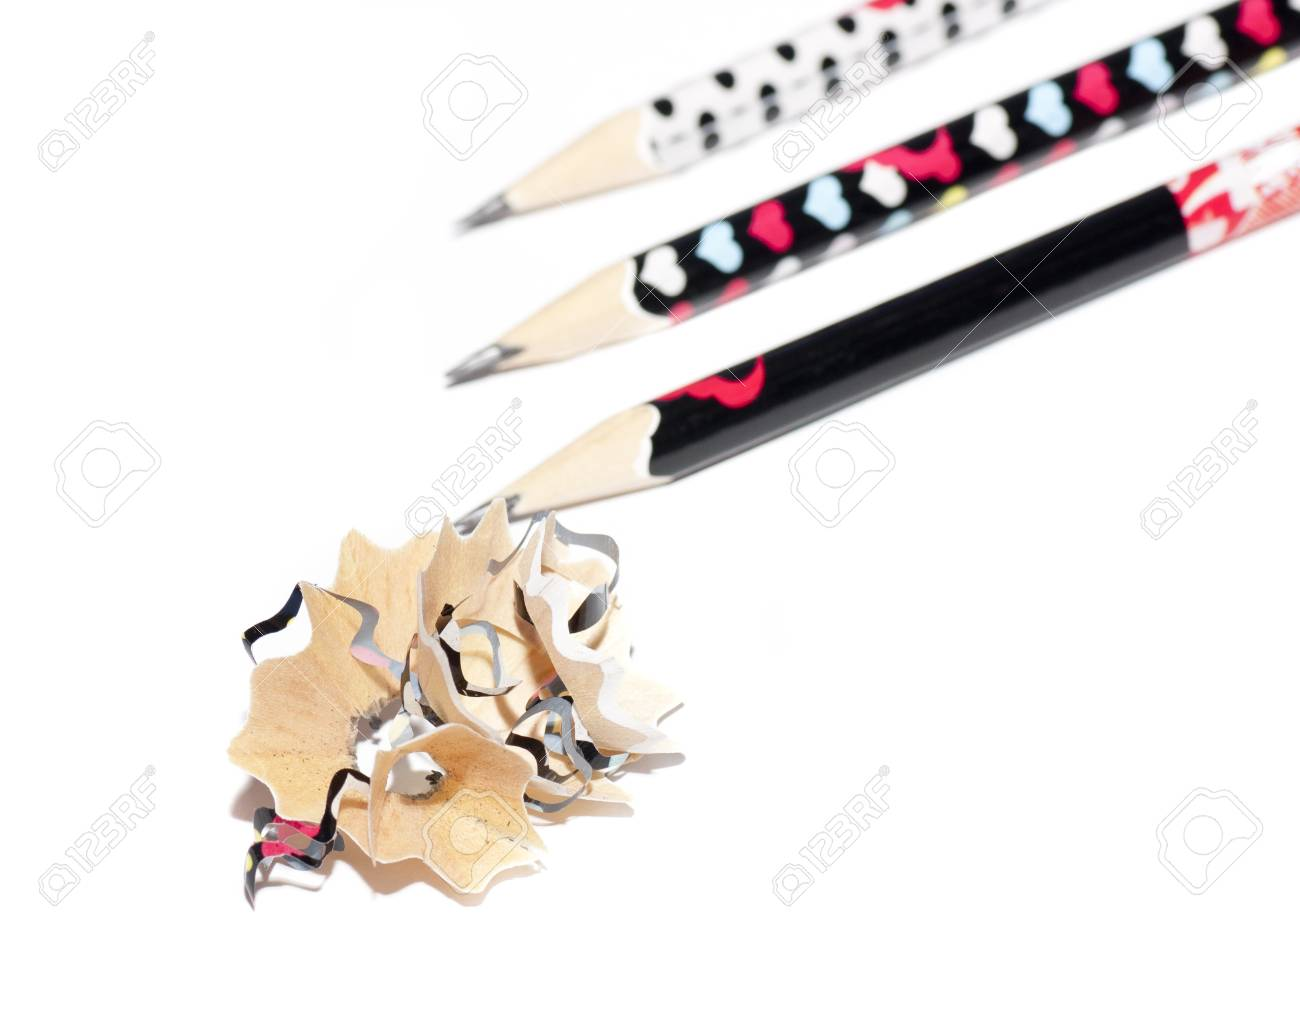 chip, after sharpening pencils Stock Photo - 18514922